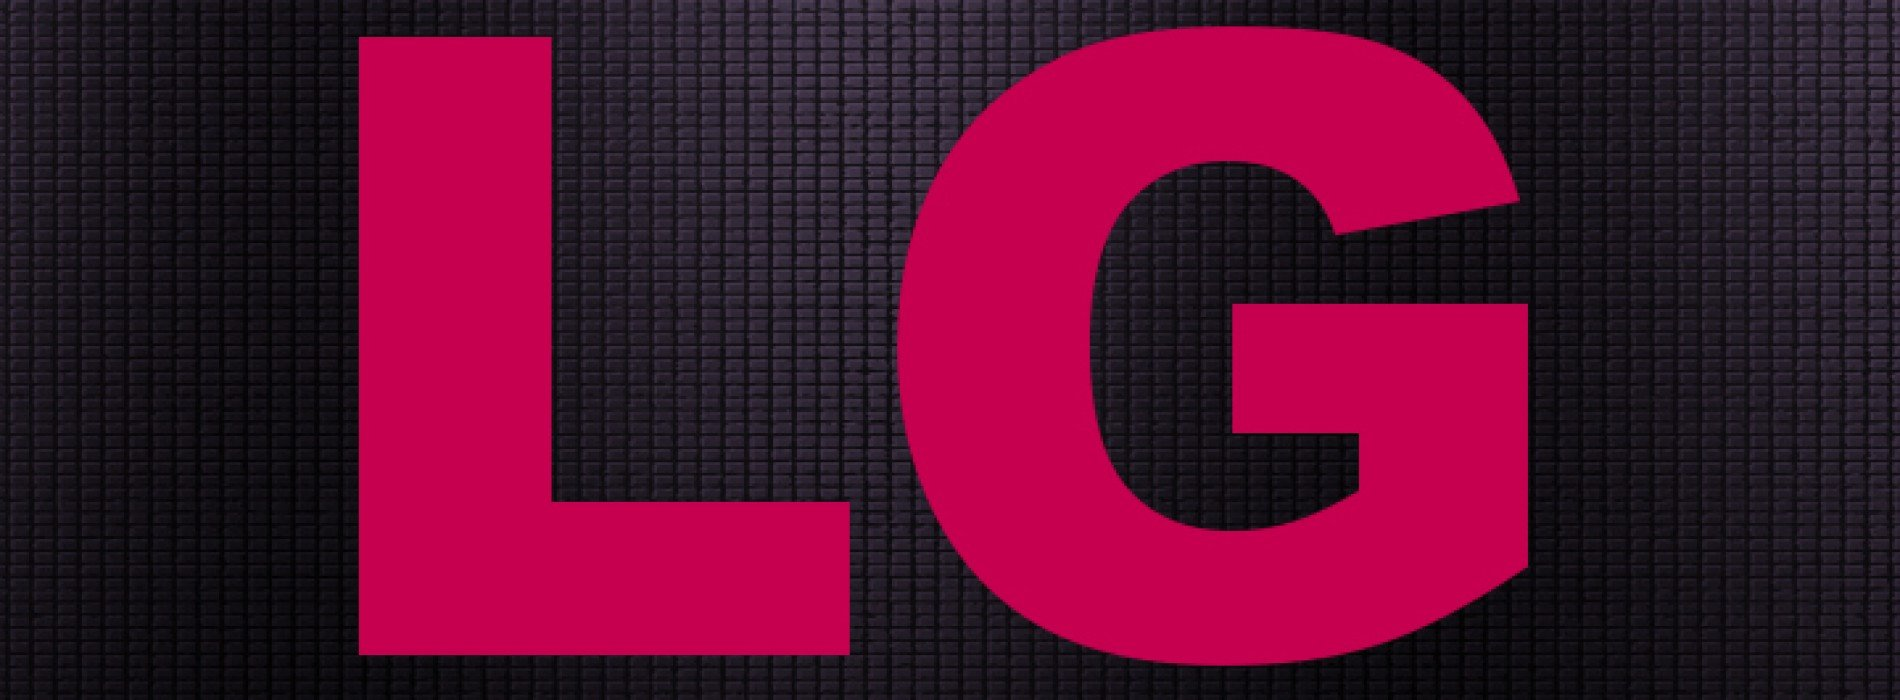 LG prepping 6.4-inch Android 4.4 device, report says